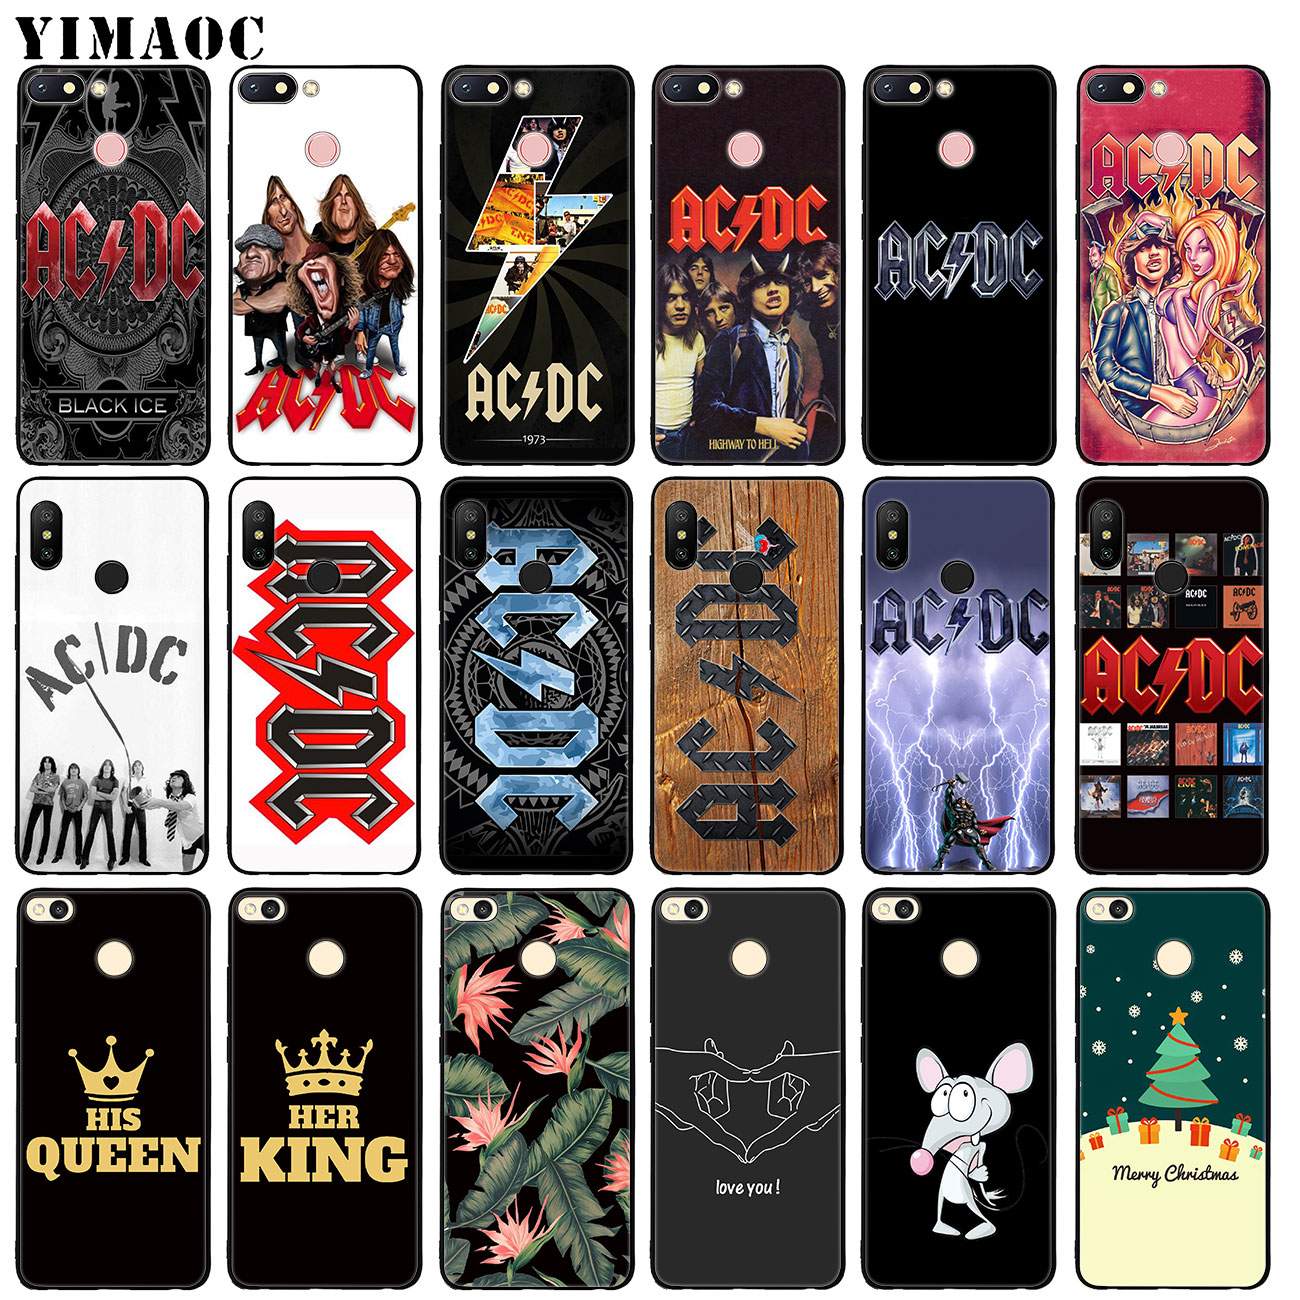 YIMAOC ac <font><b>dc</b></font> acdc poster music Soft Silicone Case for Xiaomi Redmi K20 Pro 6A 7A Note 8 7 <font><b>5</b></font> 6 Pro Mi Black flower TPU Cover image